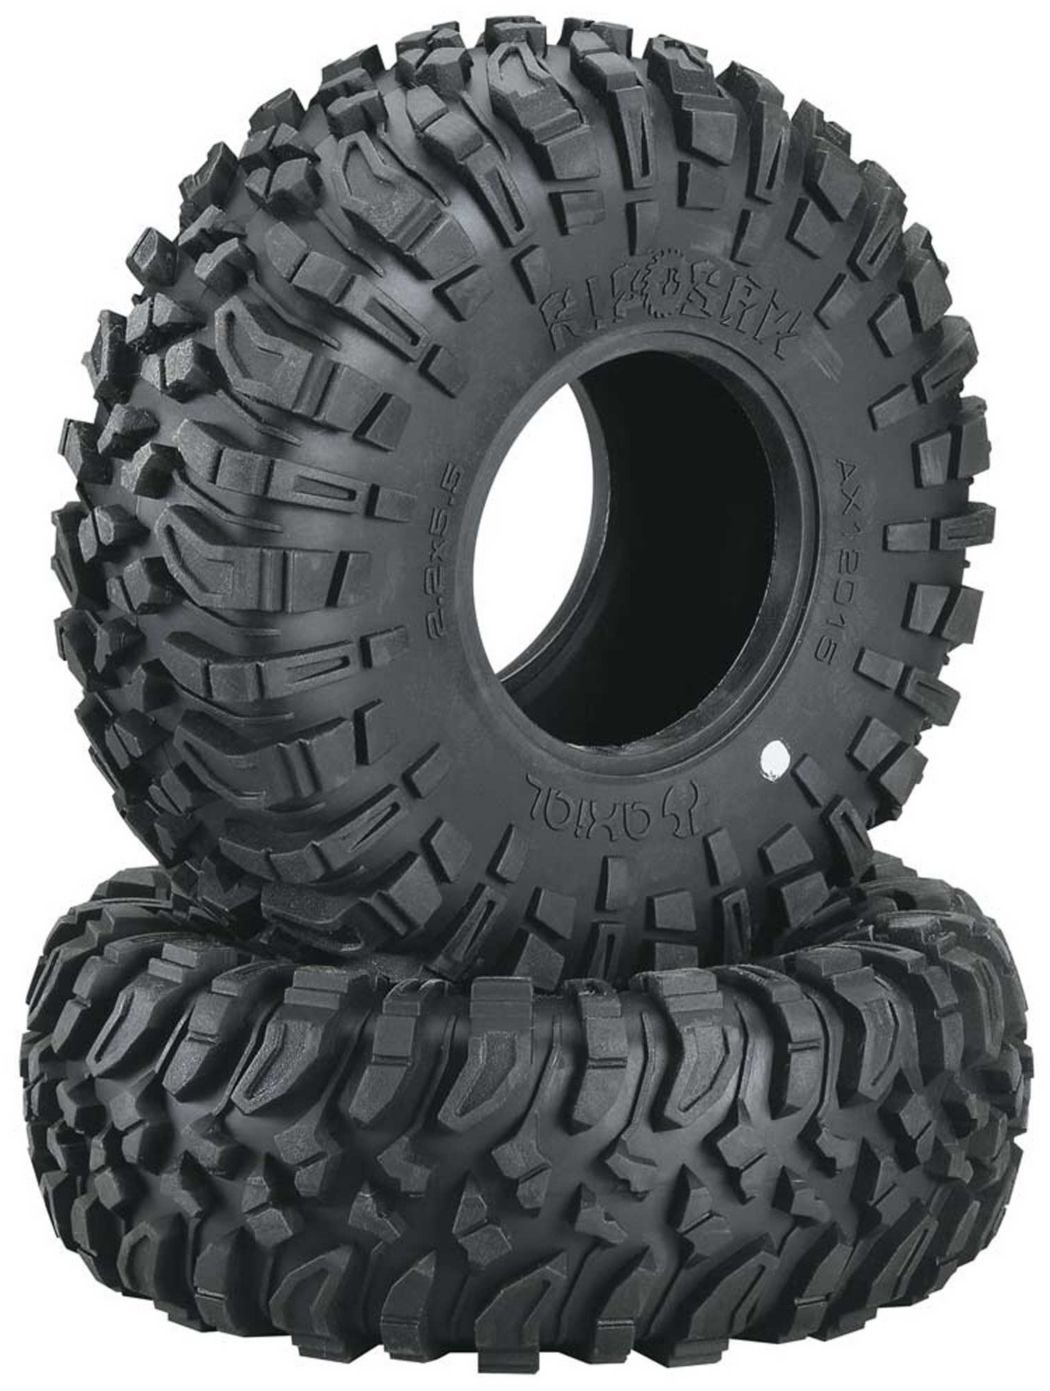 Axial 2.2 Ripsaw Tires X Compound (2)